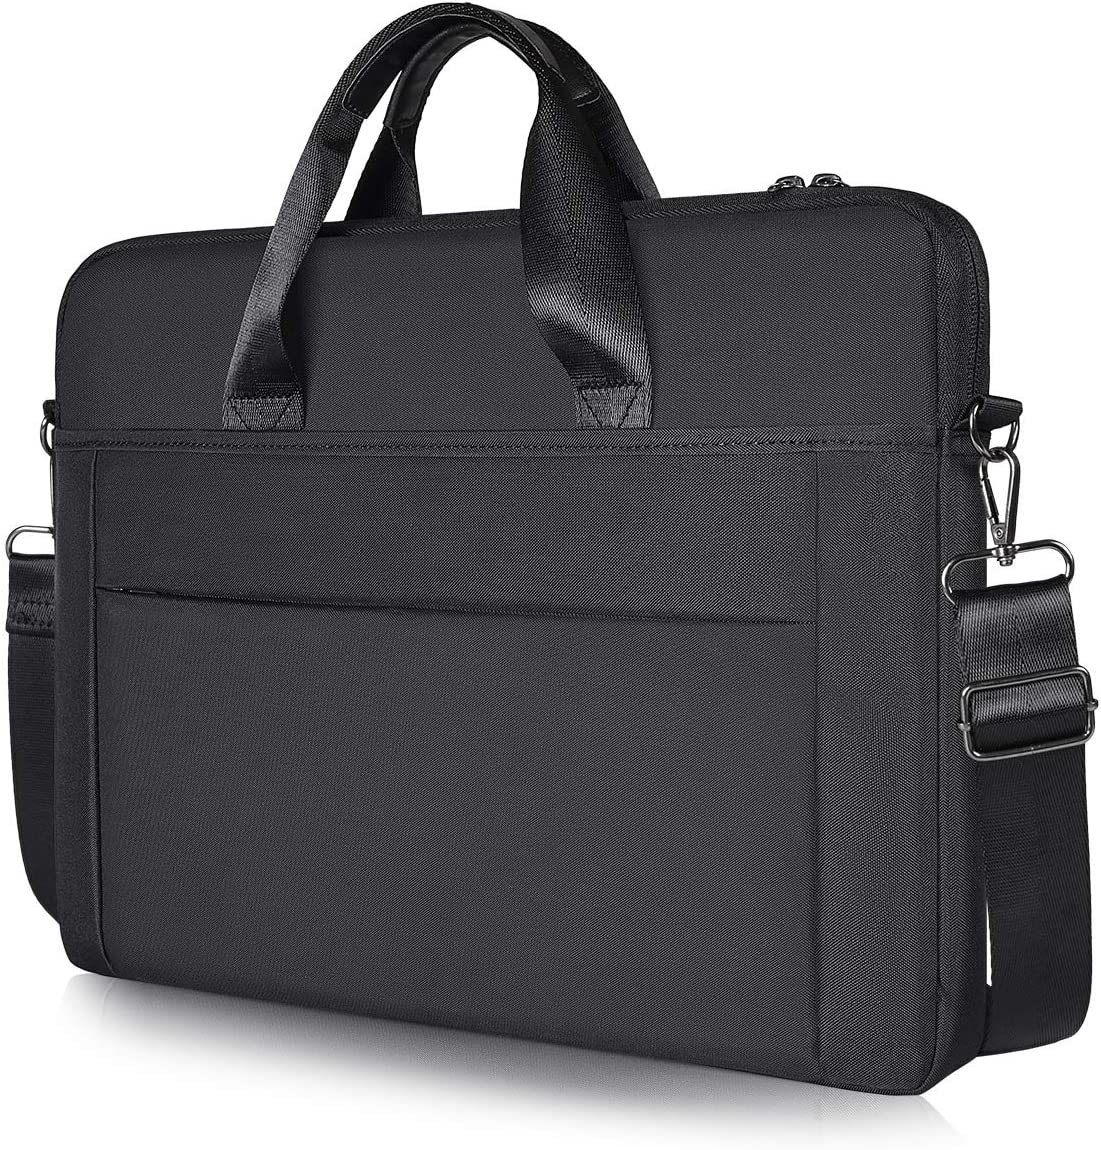 17 17.3 inch Laptop Carrying Case Protective Bag Briefcase for 2019-2020 HP Pavilion 17.3'', HP Envy 2019, HP 17-BY1053DX, 2019 ASUS TUF 17.3'', 2020 ASUS VivoBook 17, Lenovo IdeaPad L340 17.3''